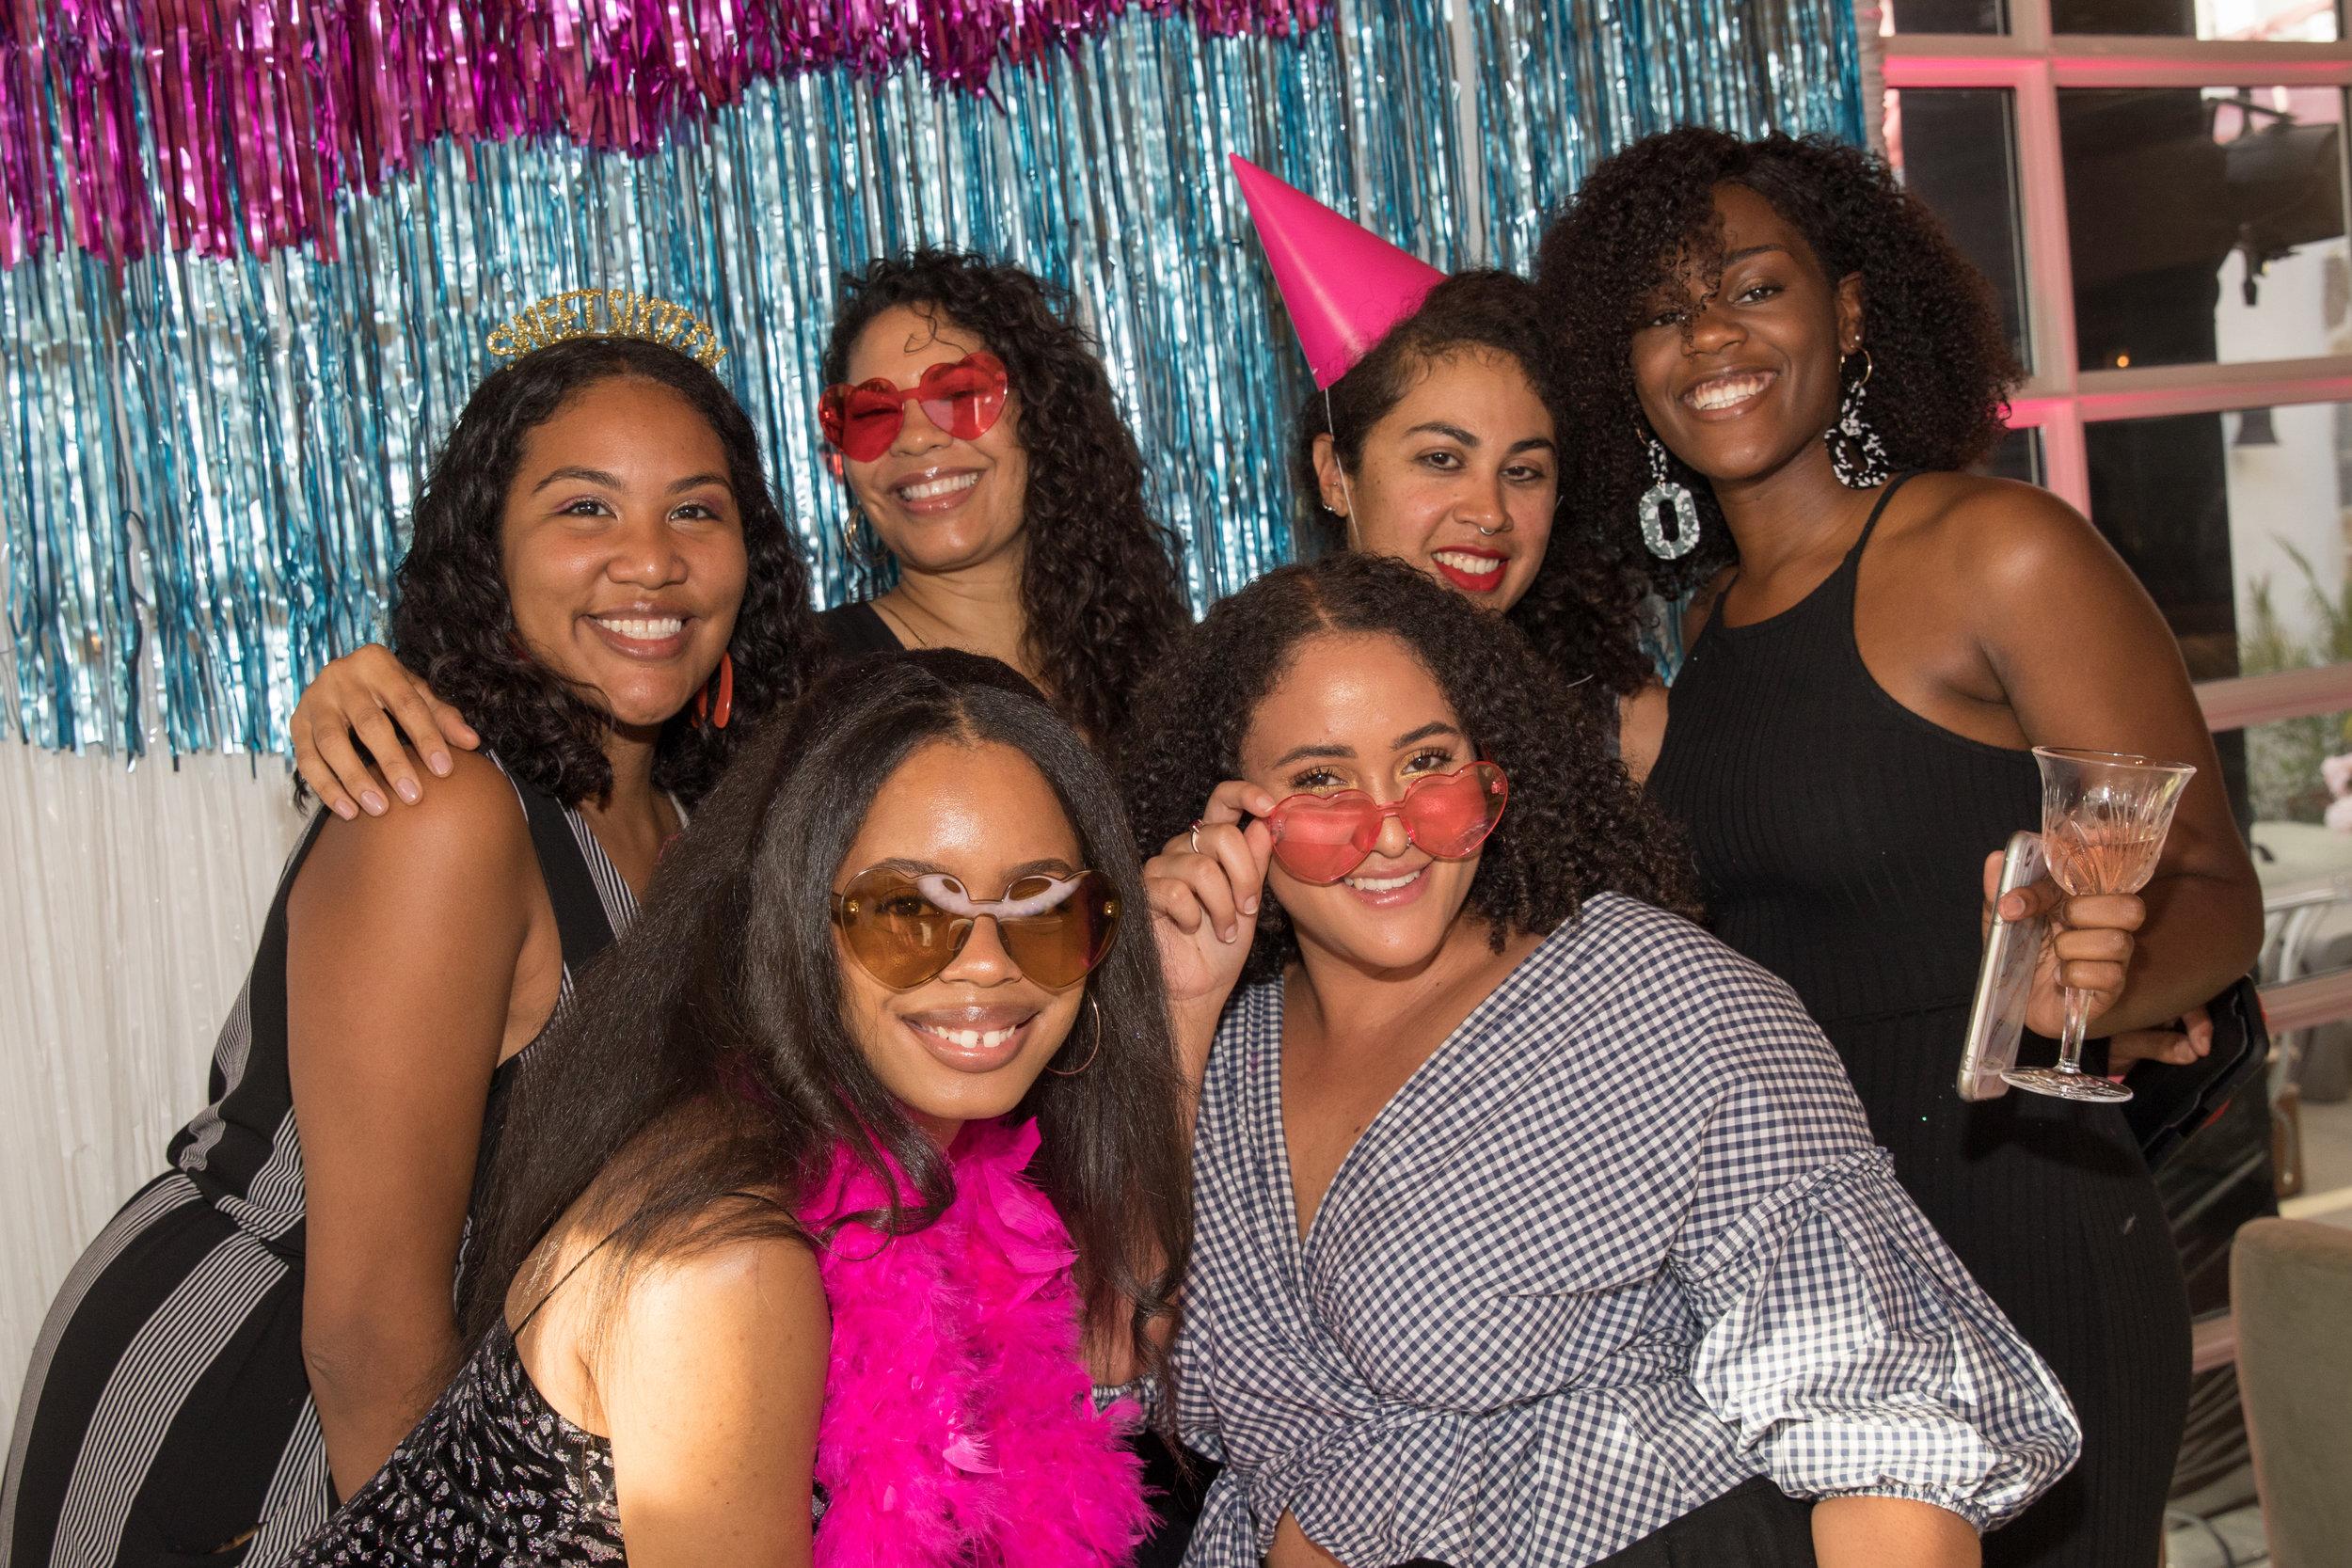 Party guests stack up on props and crouch behind the photo booth to get the perfect shot.